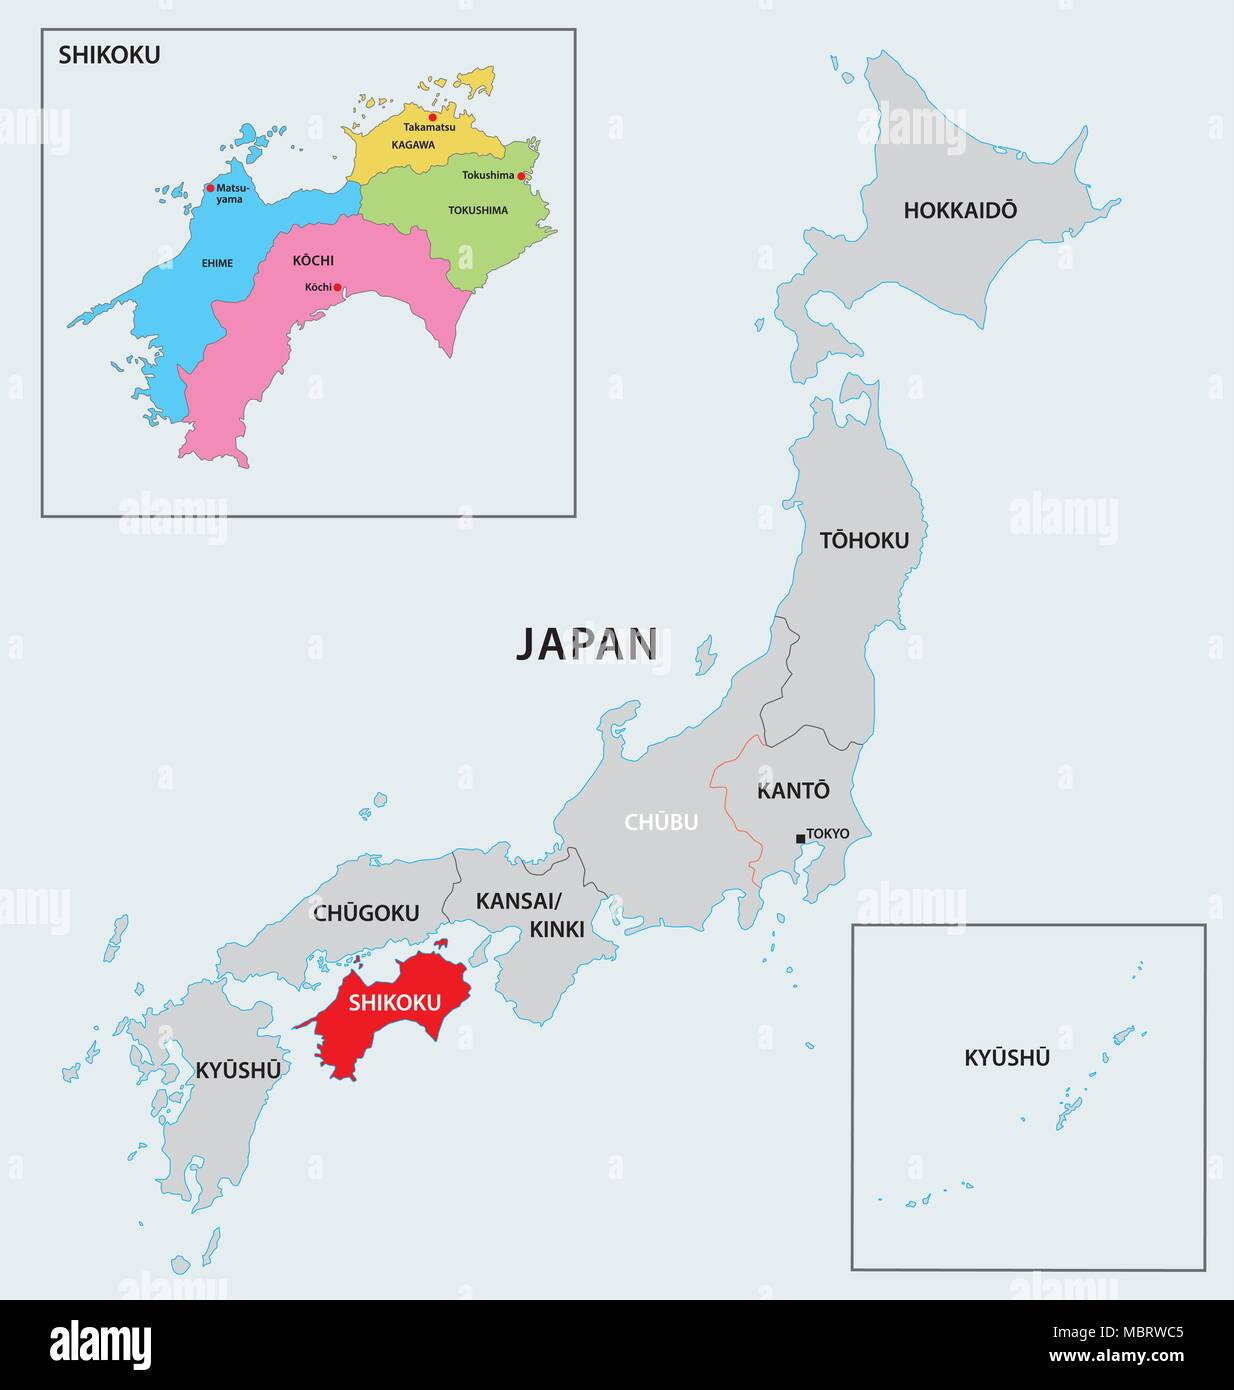 japan region shikoku map Stock Vector